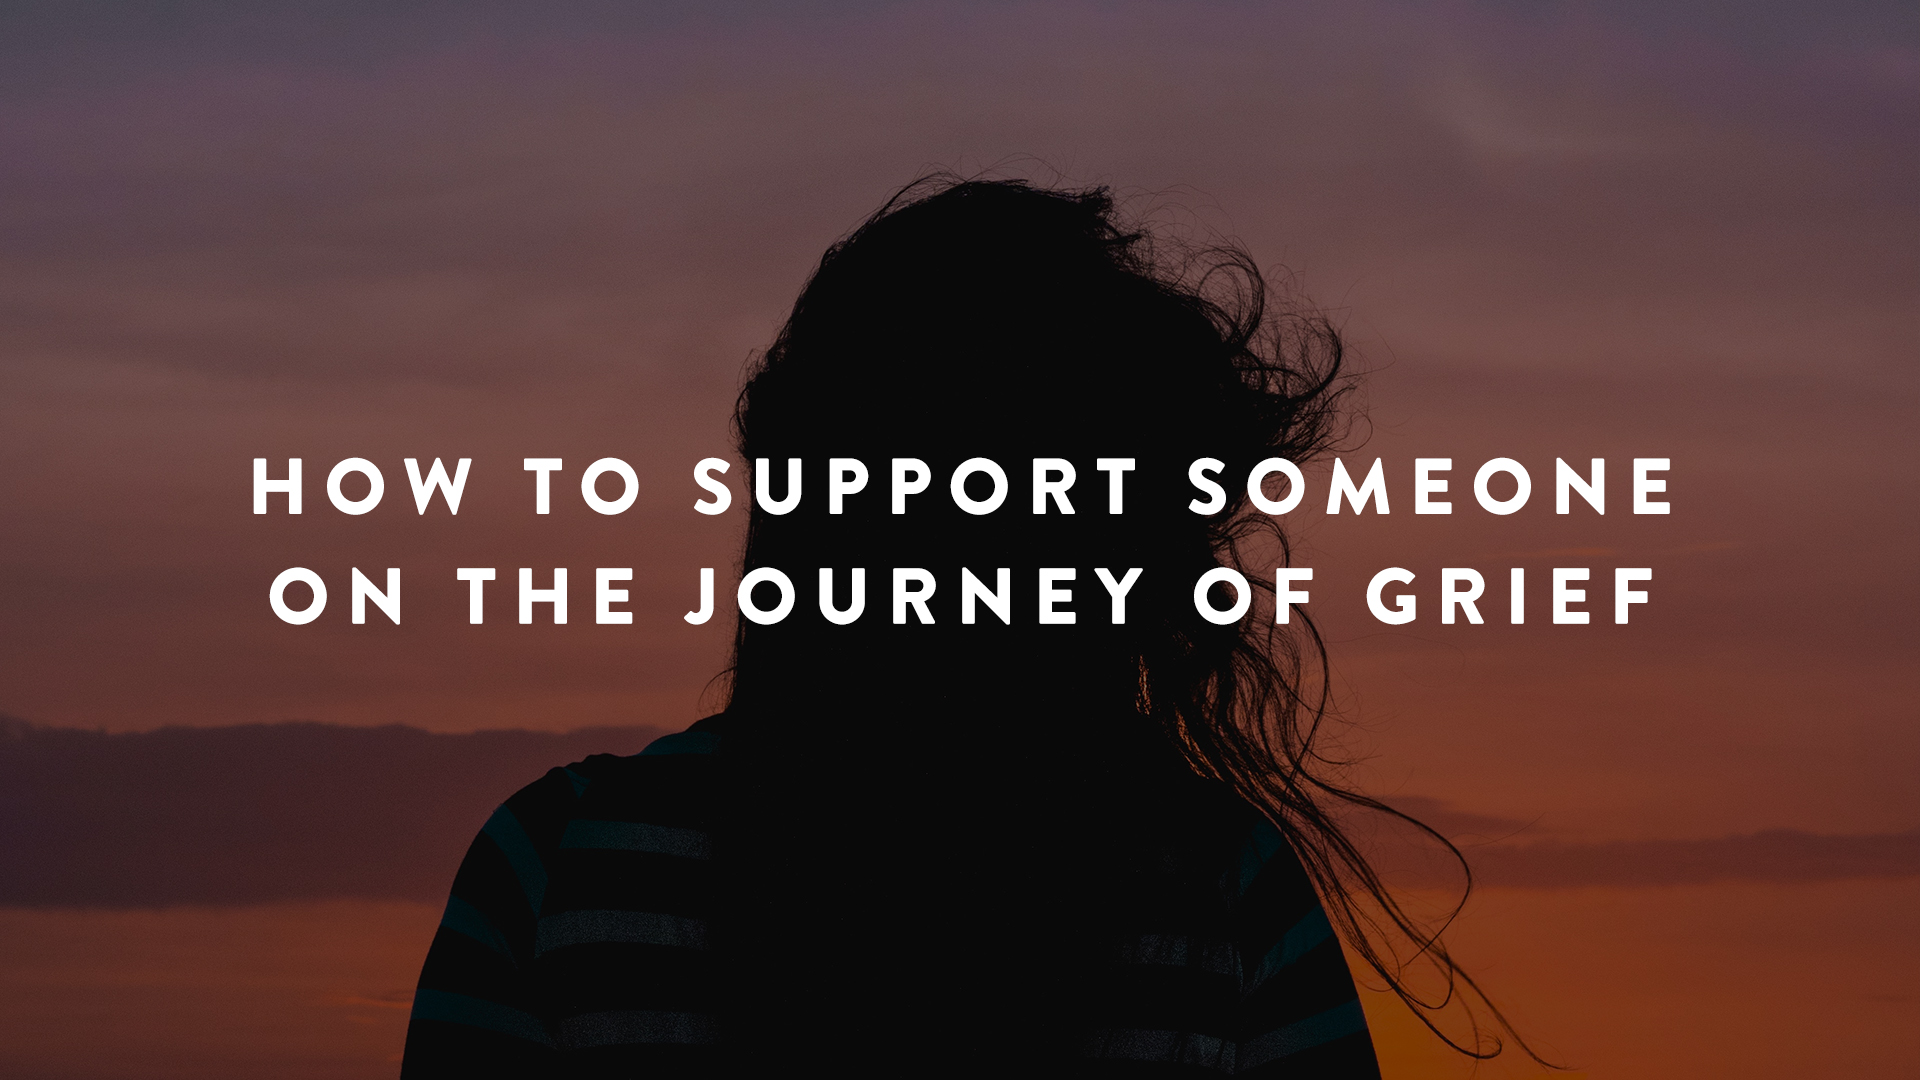 How to support someone on their journey of grief